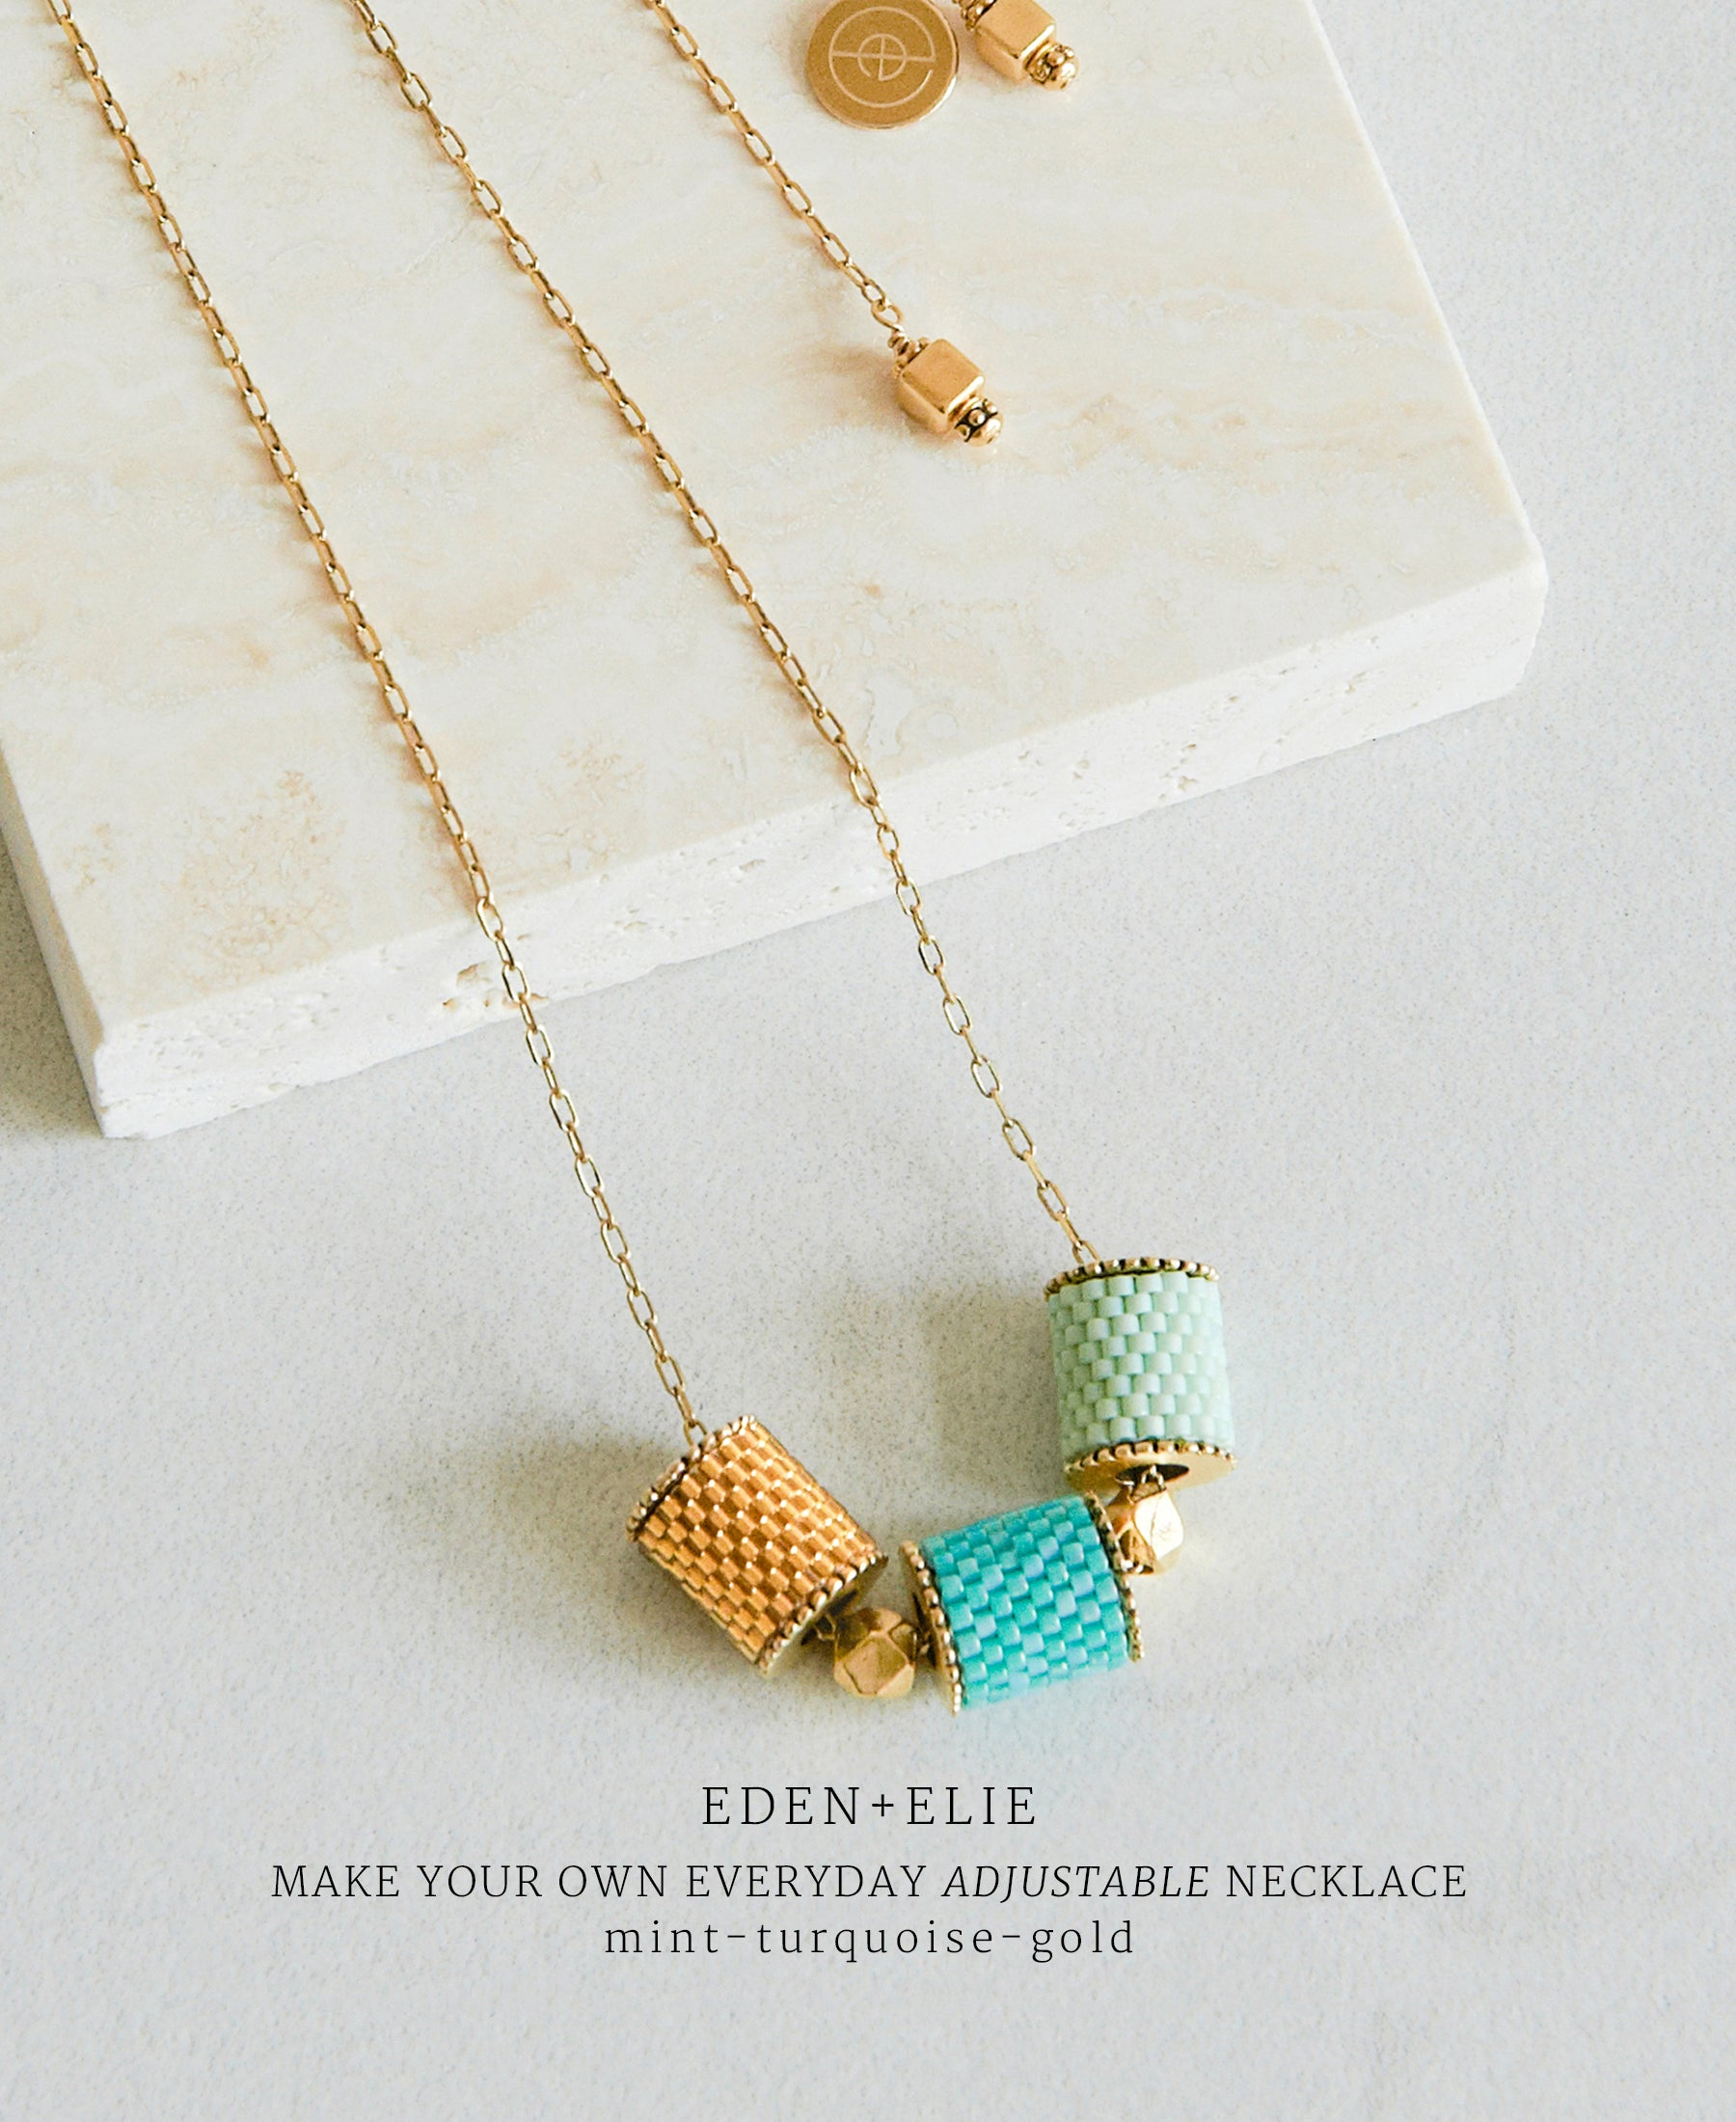 EDEN + ELIE Everyday adjustable length necklace - make your own